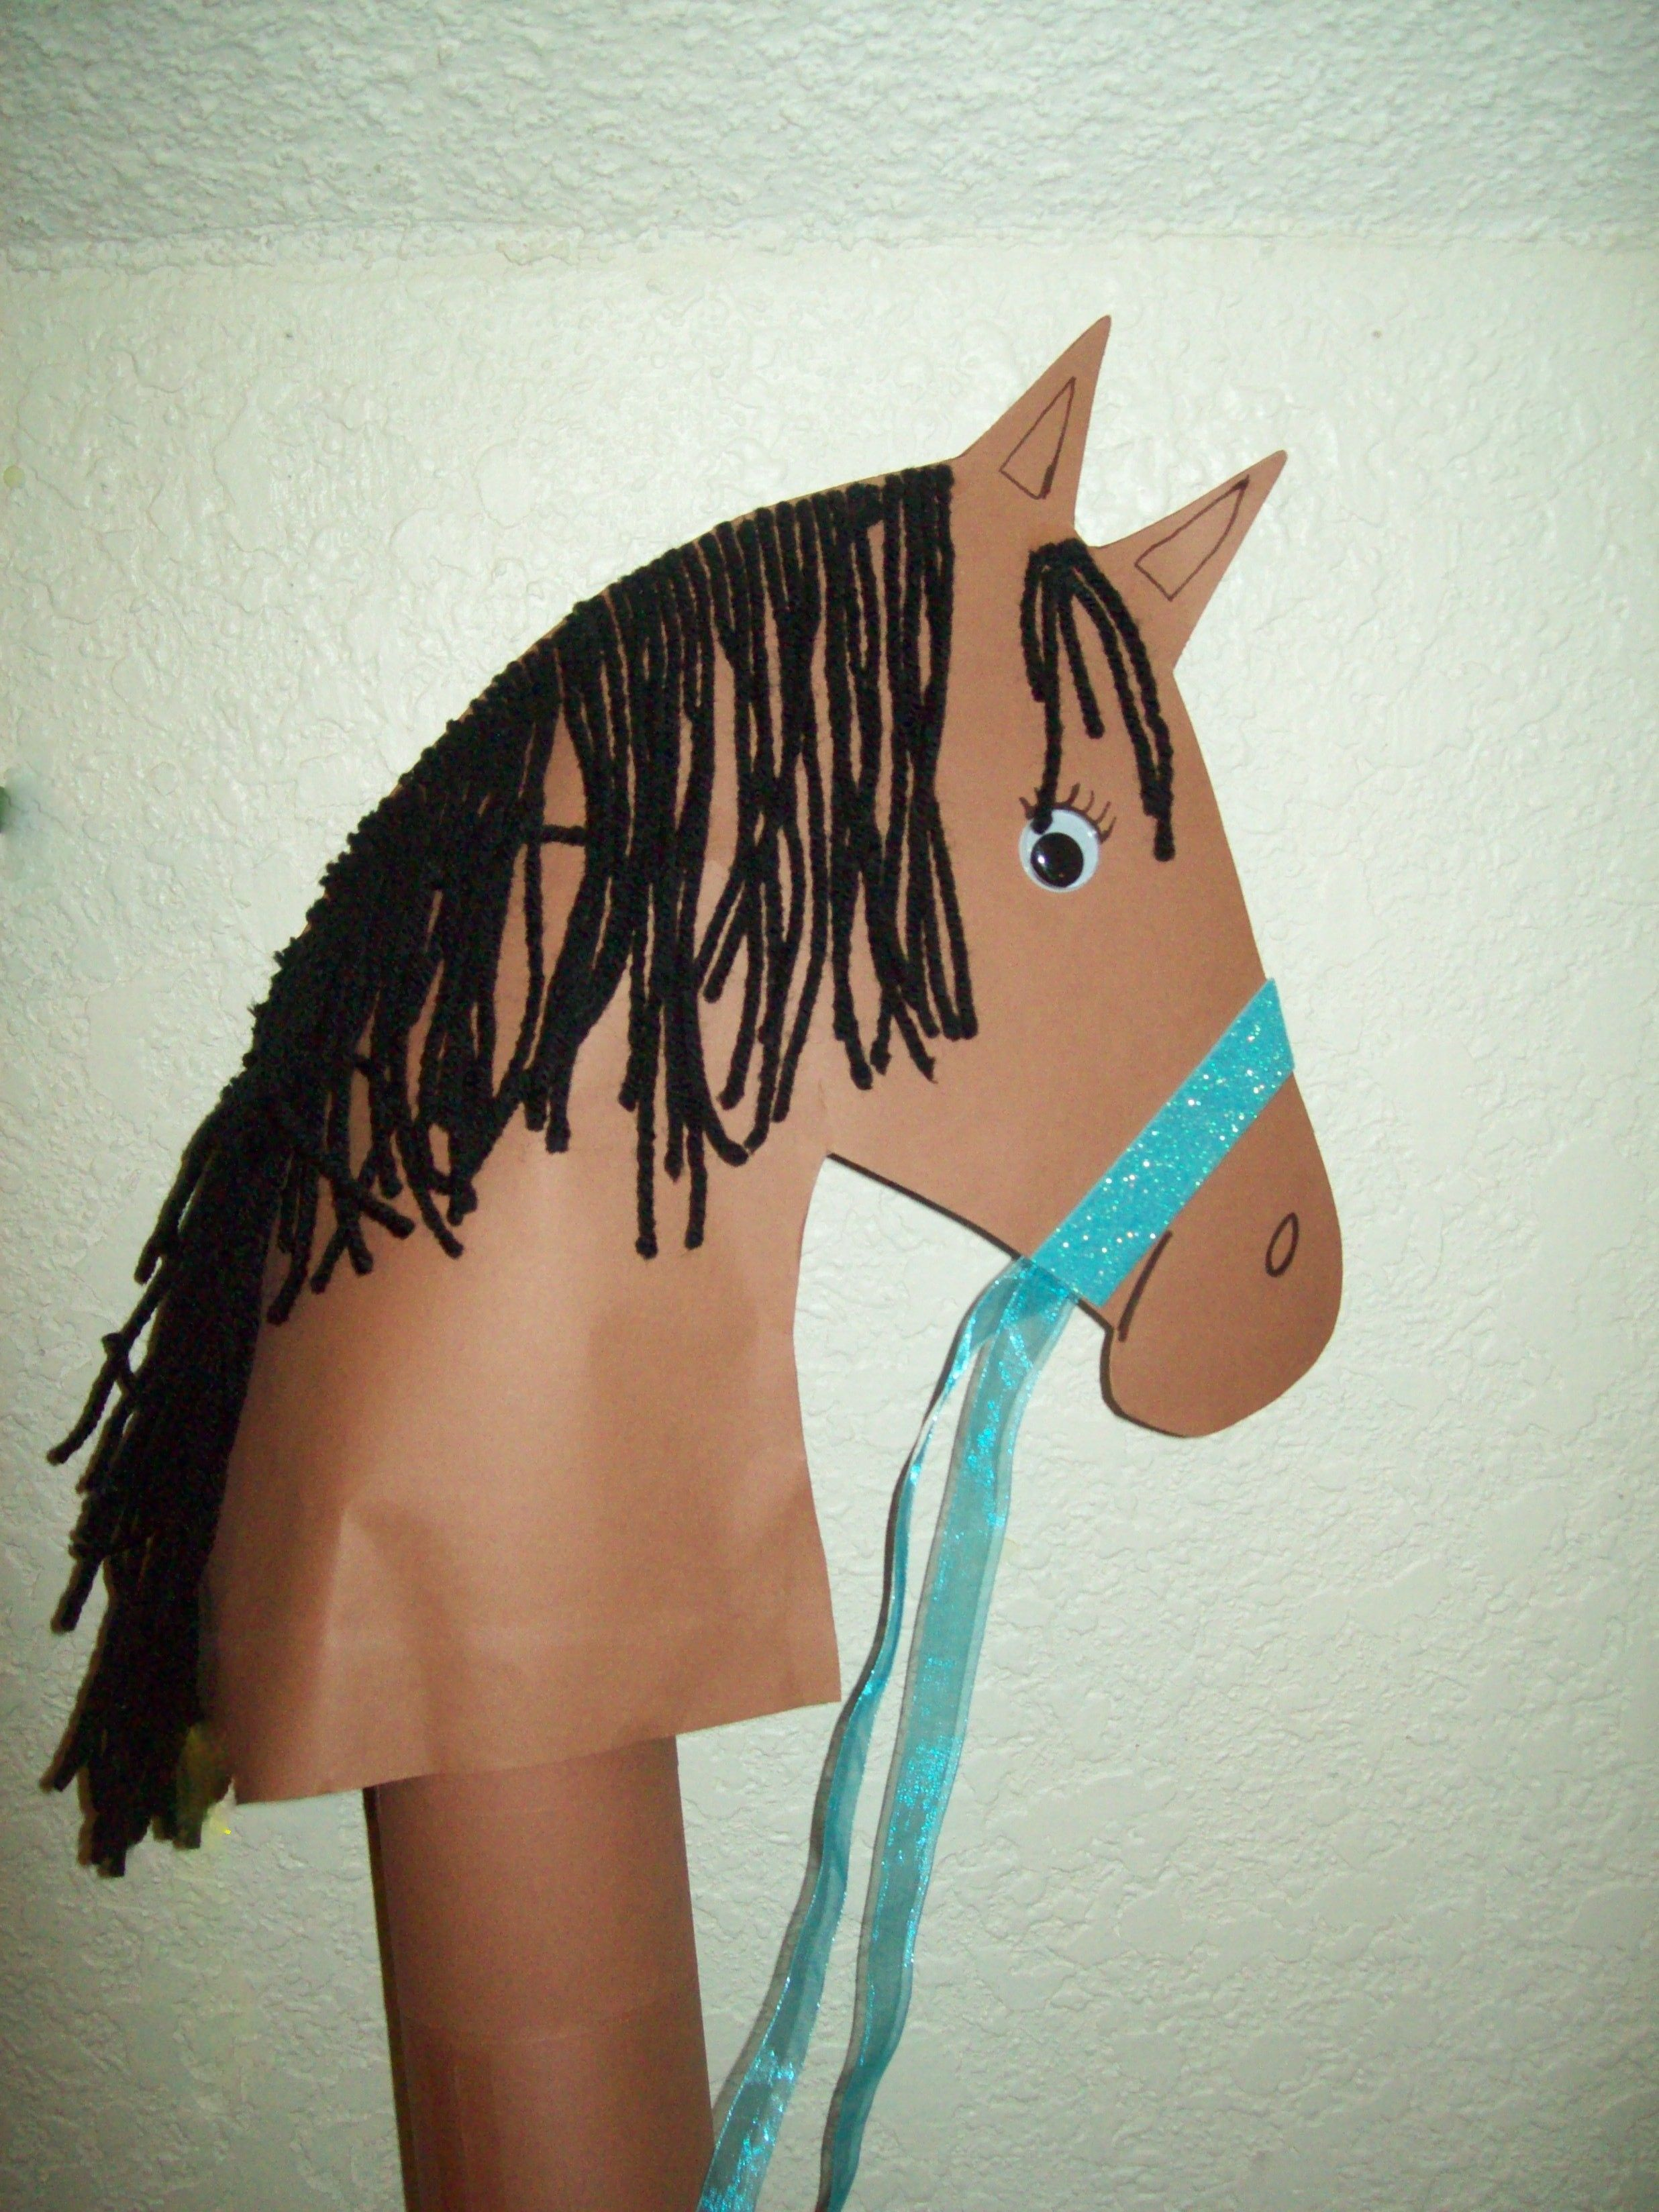 Horse Craft Diy With Construction Paper Yarn